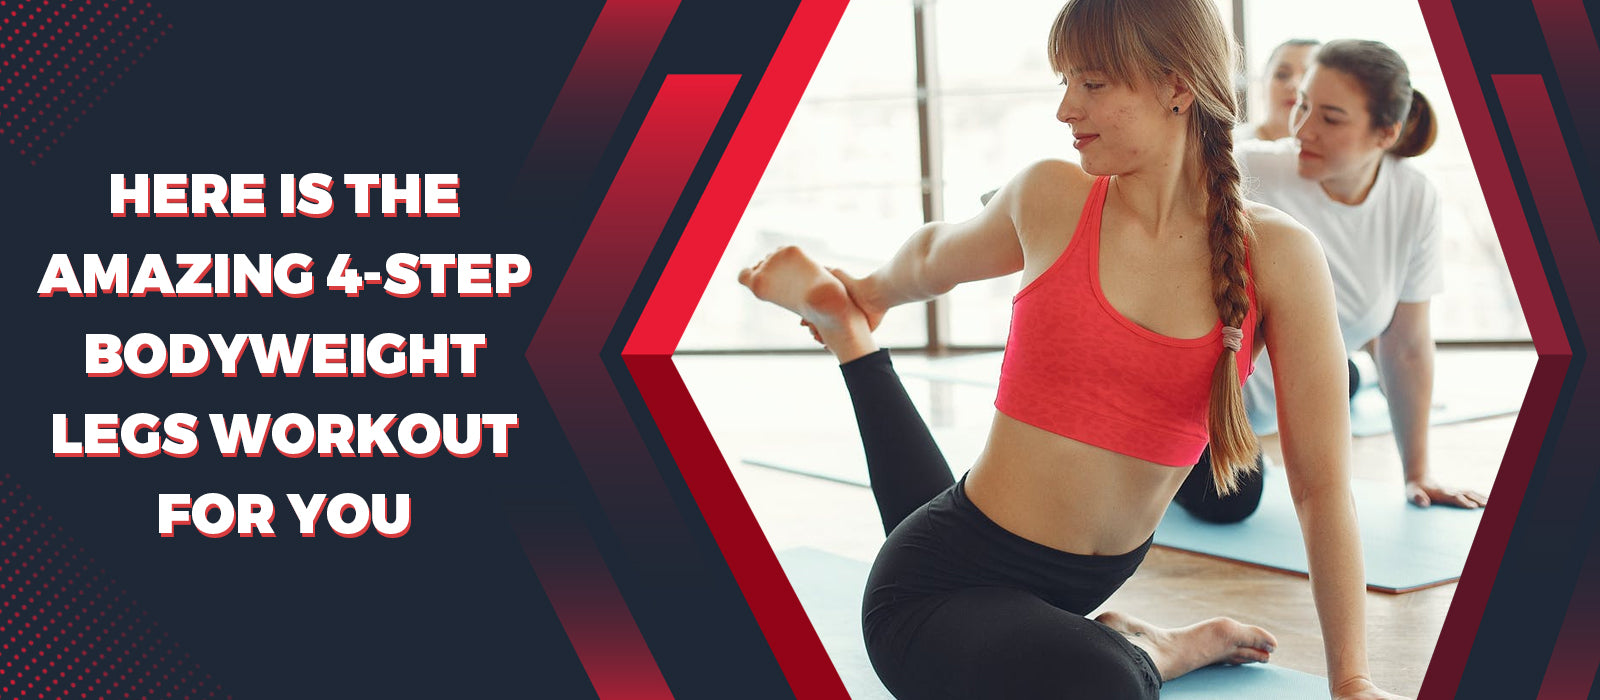 Here Is The Amazing 4-Step Bodyweight Legs Workout For You